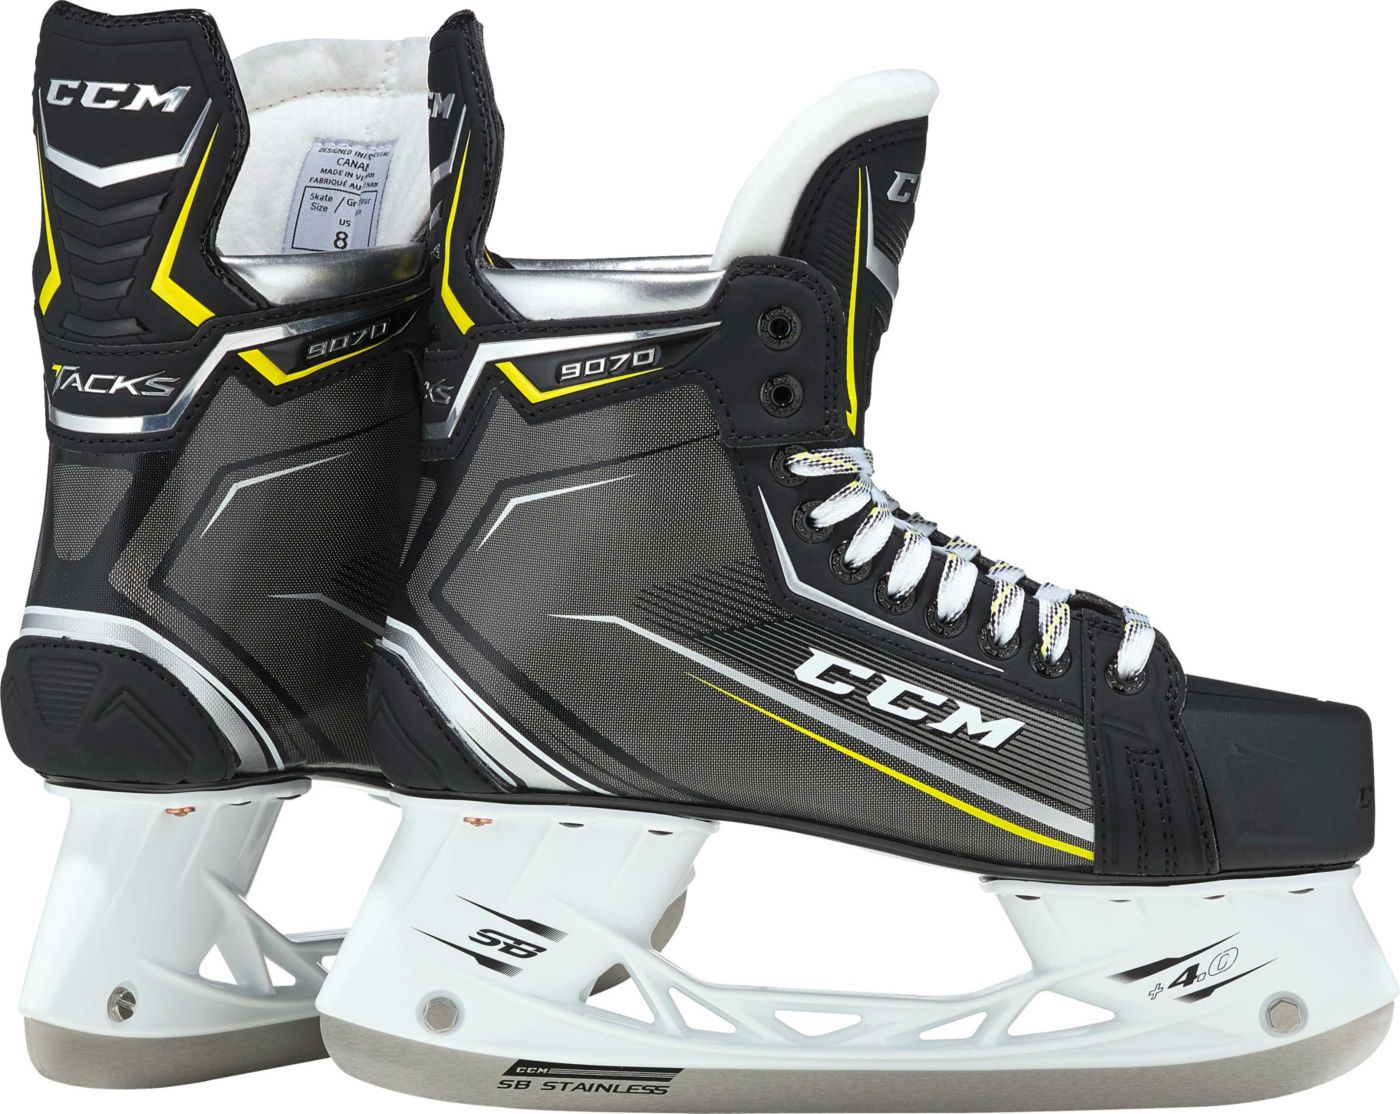 CCM Senior Tacks 9070 Ice Hockey Skates